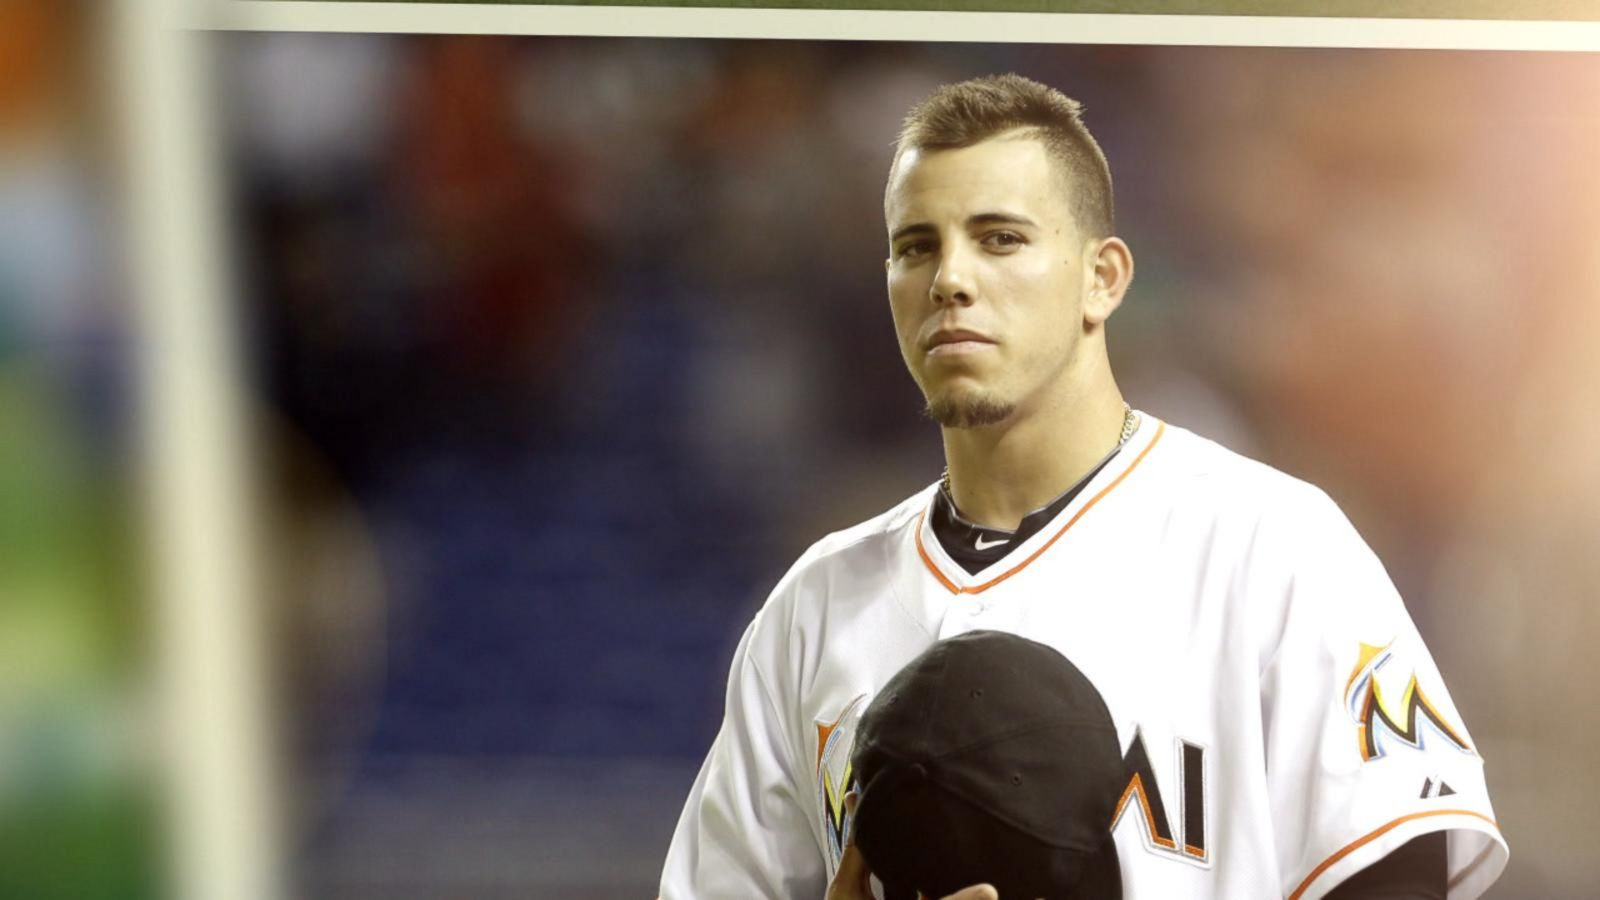 VIDEO: New Details in Death of Marlins Star Jose Fernandez